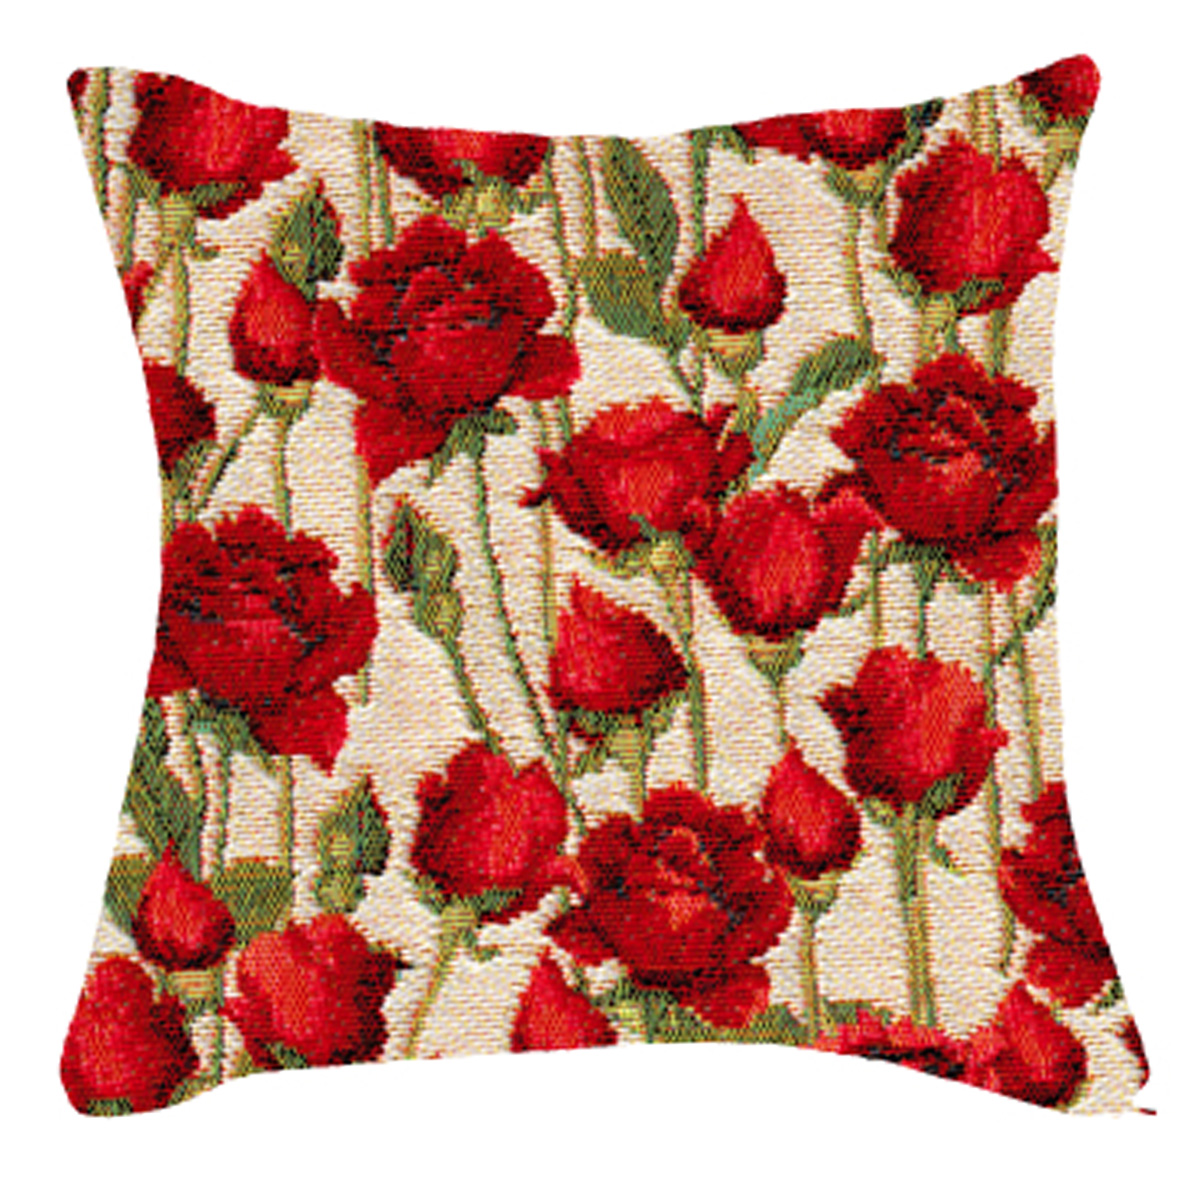 Coussin artisanal \'Royal Tapisserie\' blanc rouge (roses rouges)  - 45x45 cm - [Q6355]